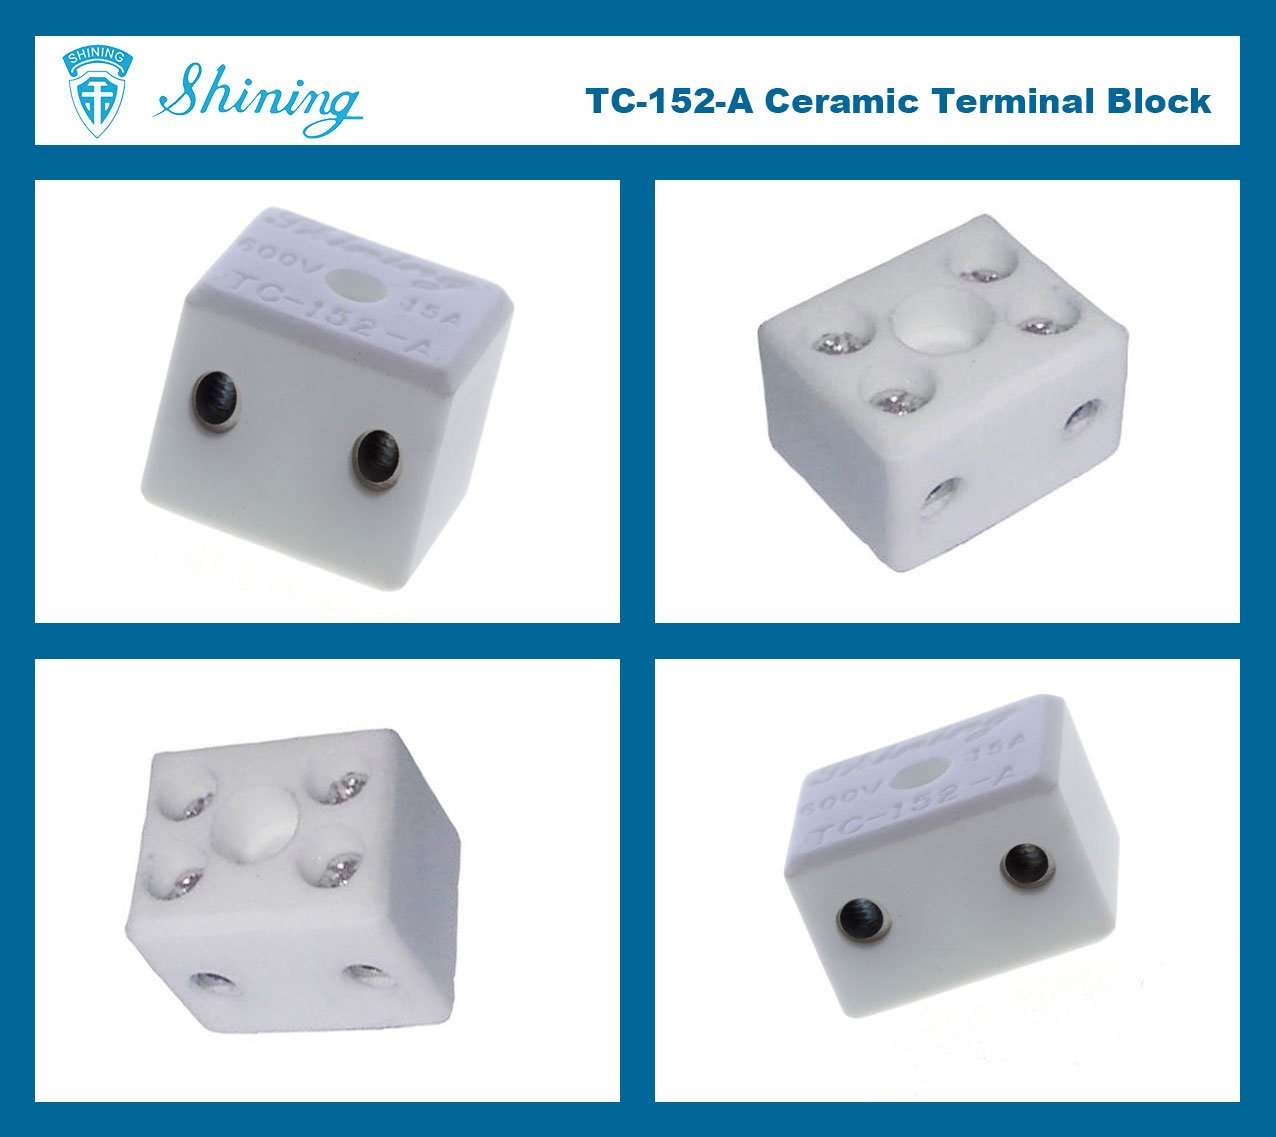 TC-152-A Panel Mounted 600V 15A 2 Pole Ceramic Terminal Block